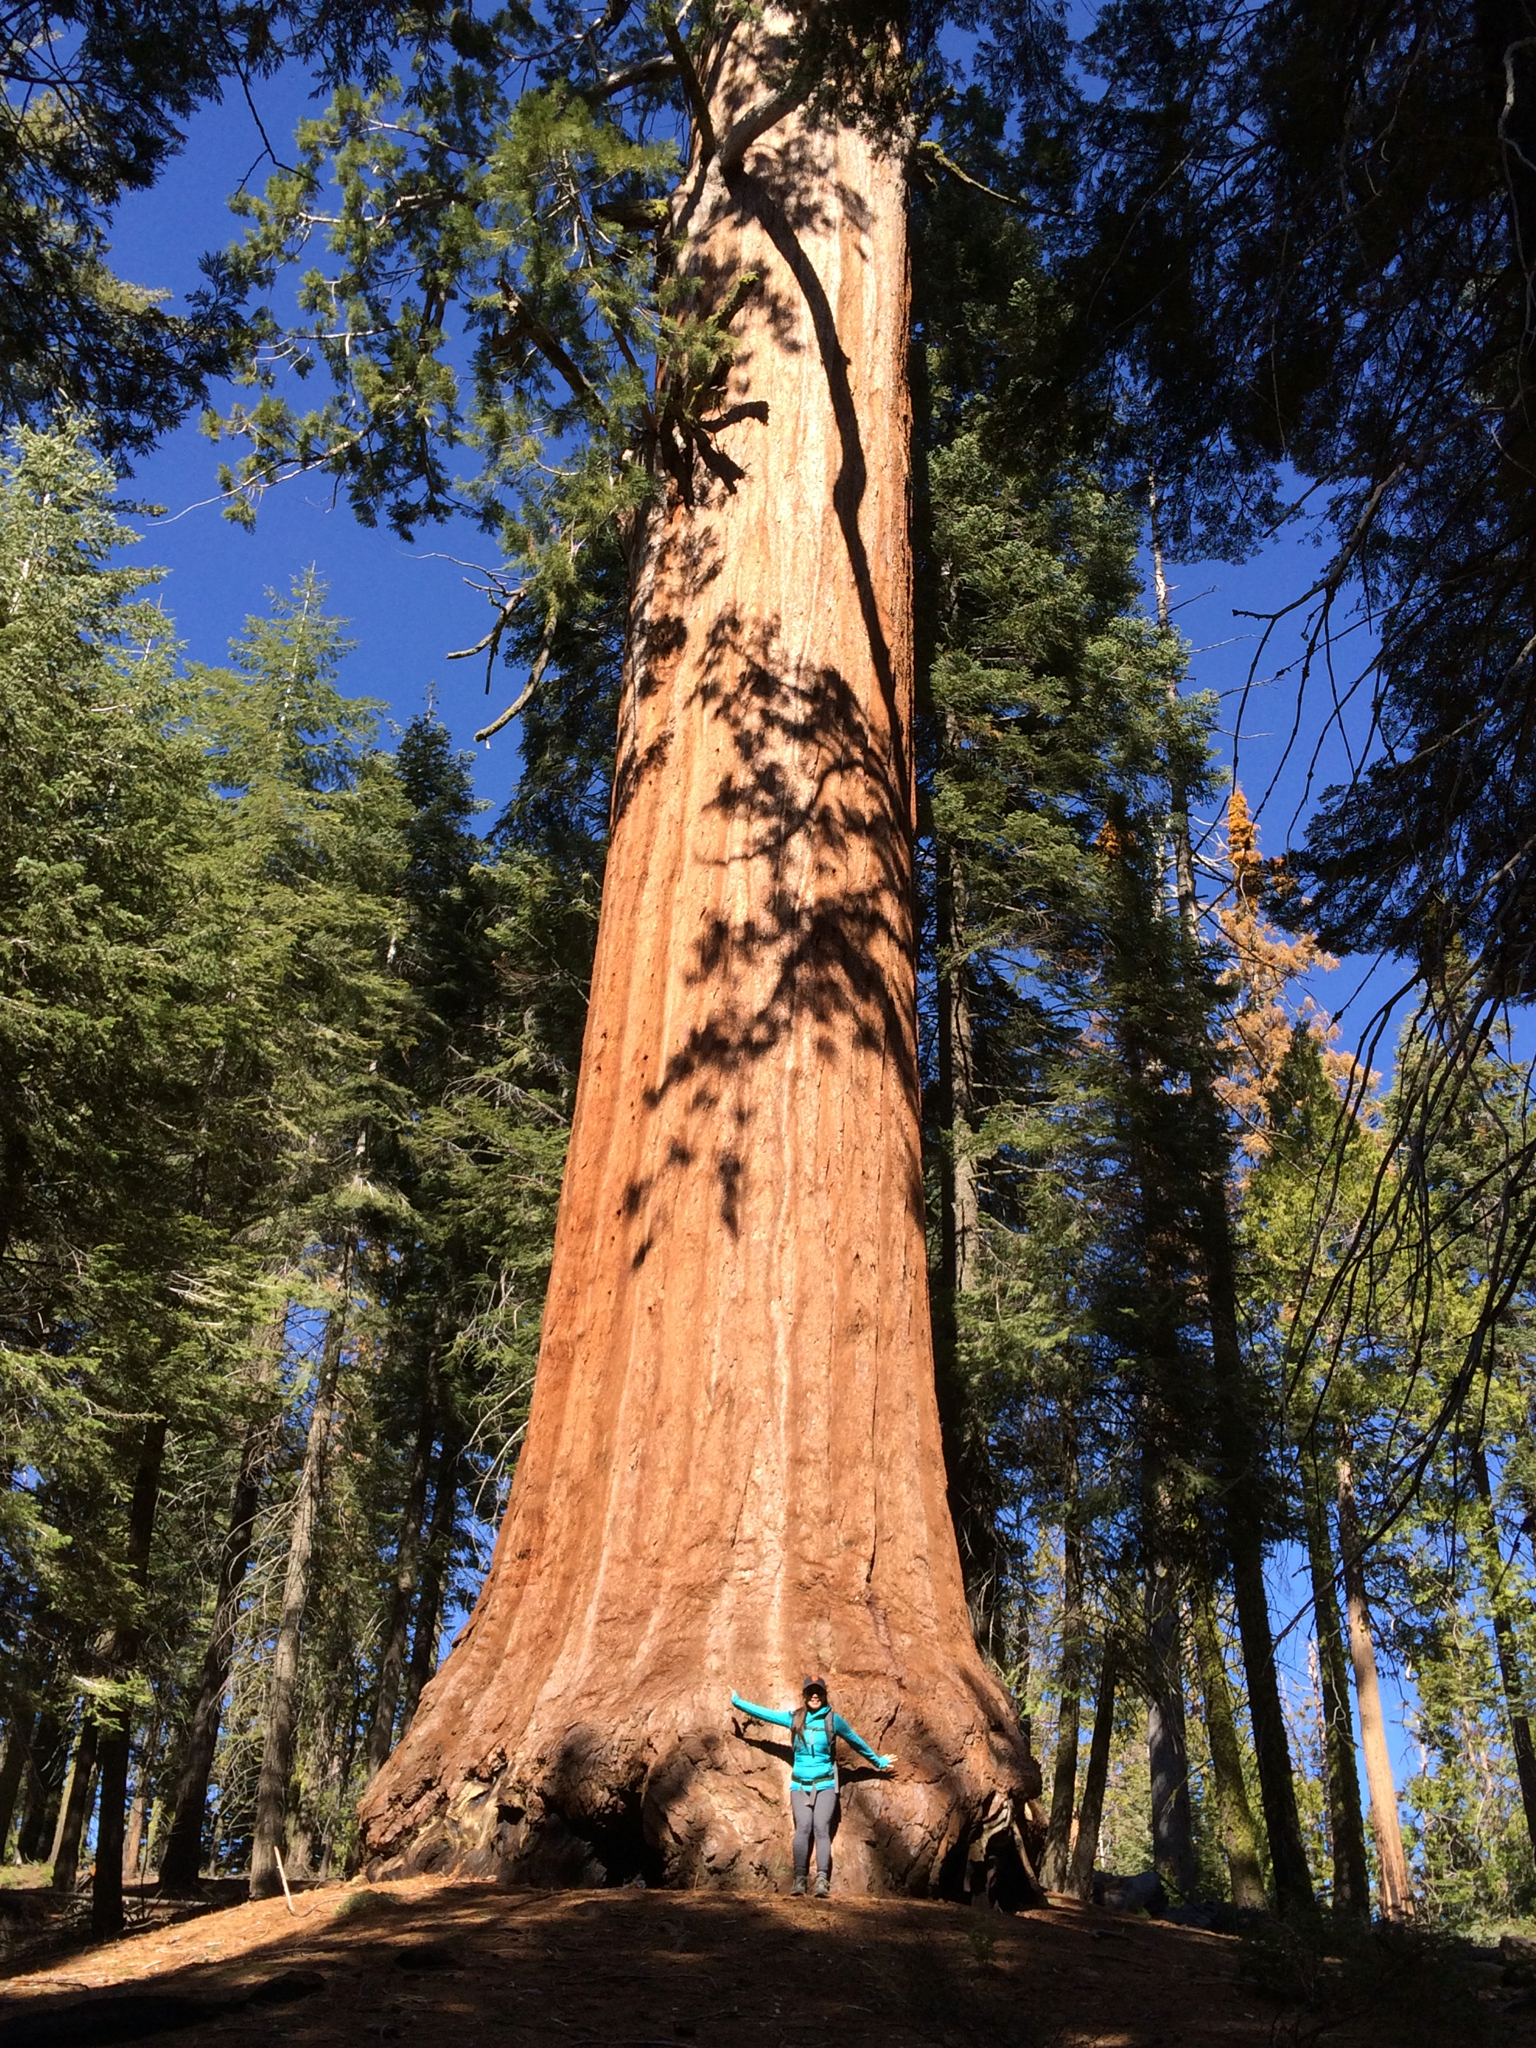 National-Parks-You-Must-See-Sequoia-National-Park-1.JPG